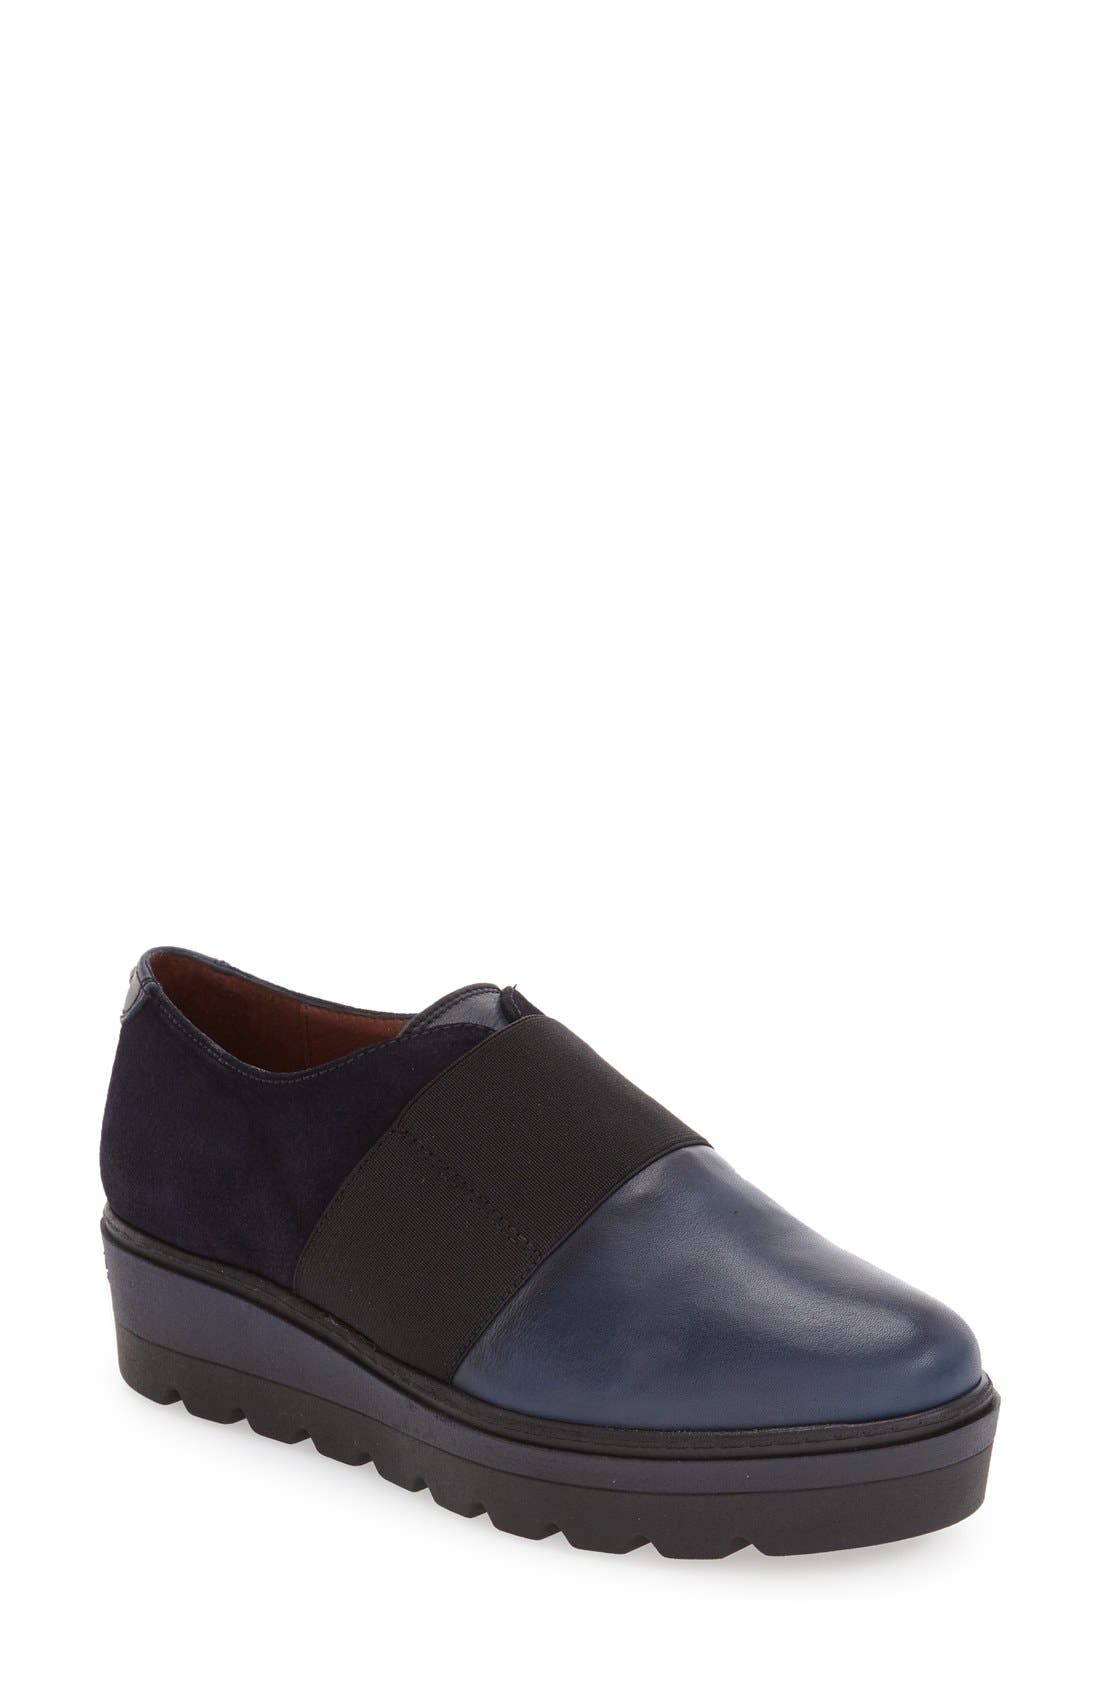 'Ardia' Slip-On Platform Flat,                             Main thumbnail 1, color,                             Soho Blue Leather